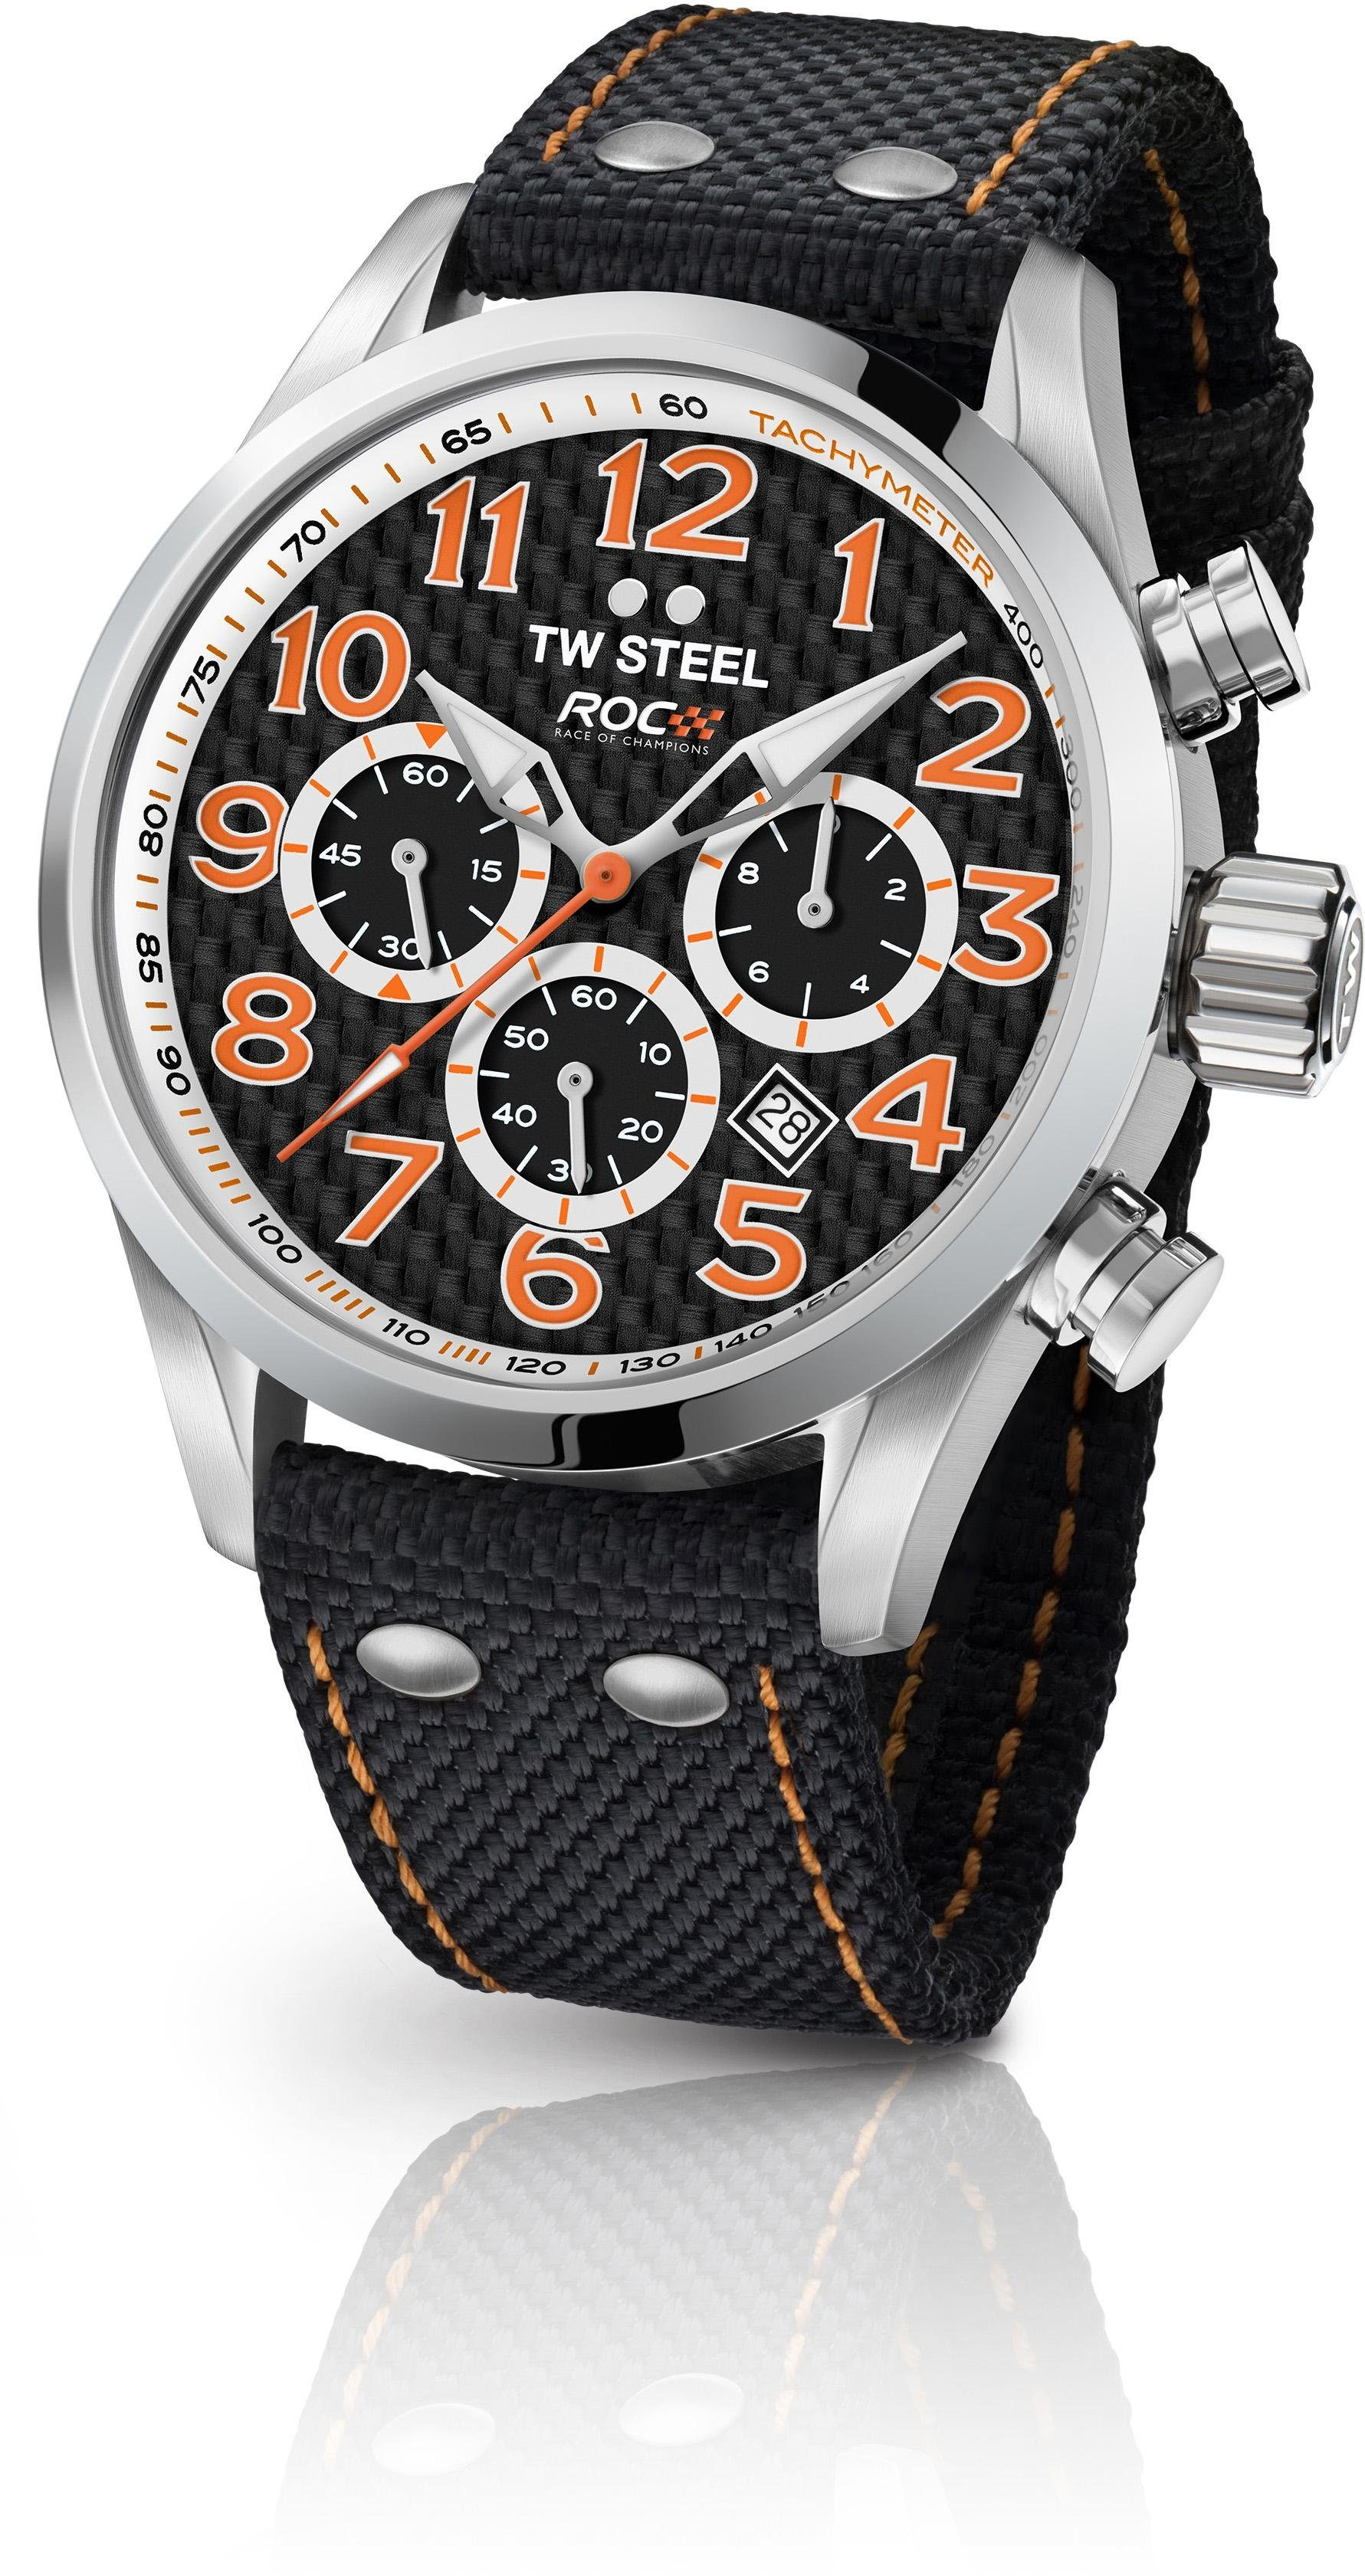 TW Steel Chronograph »Race of Champion, TW-966«